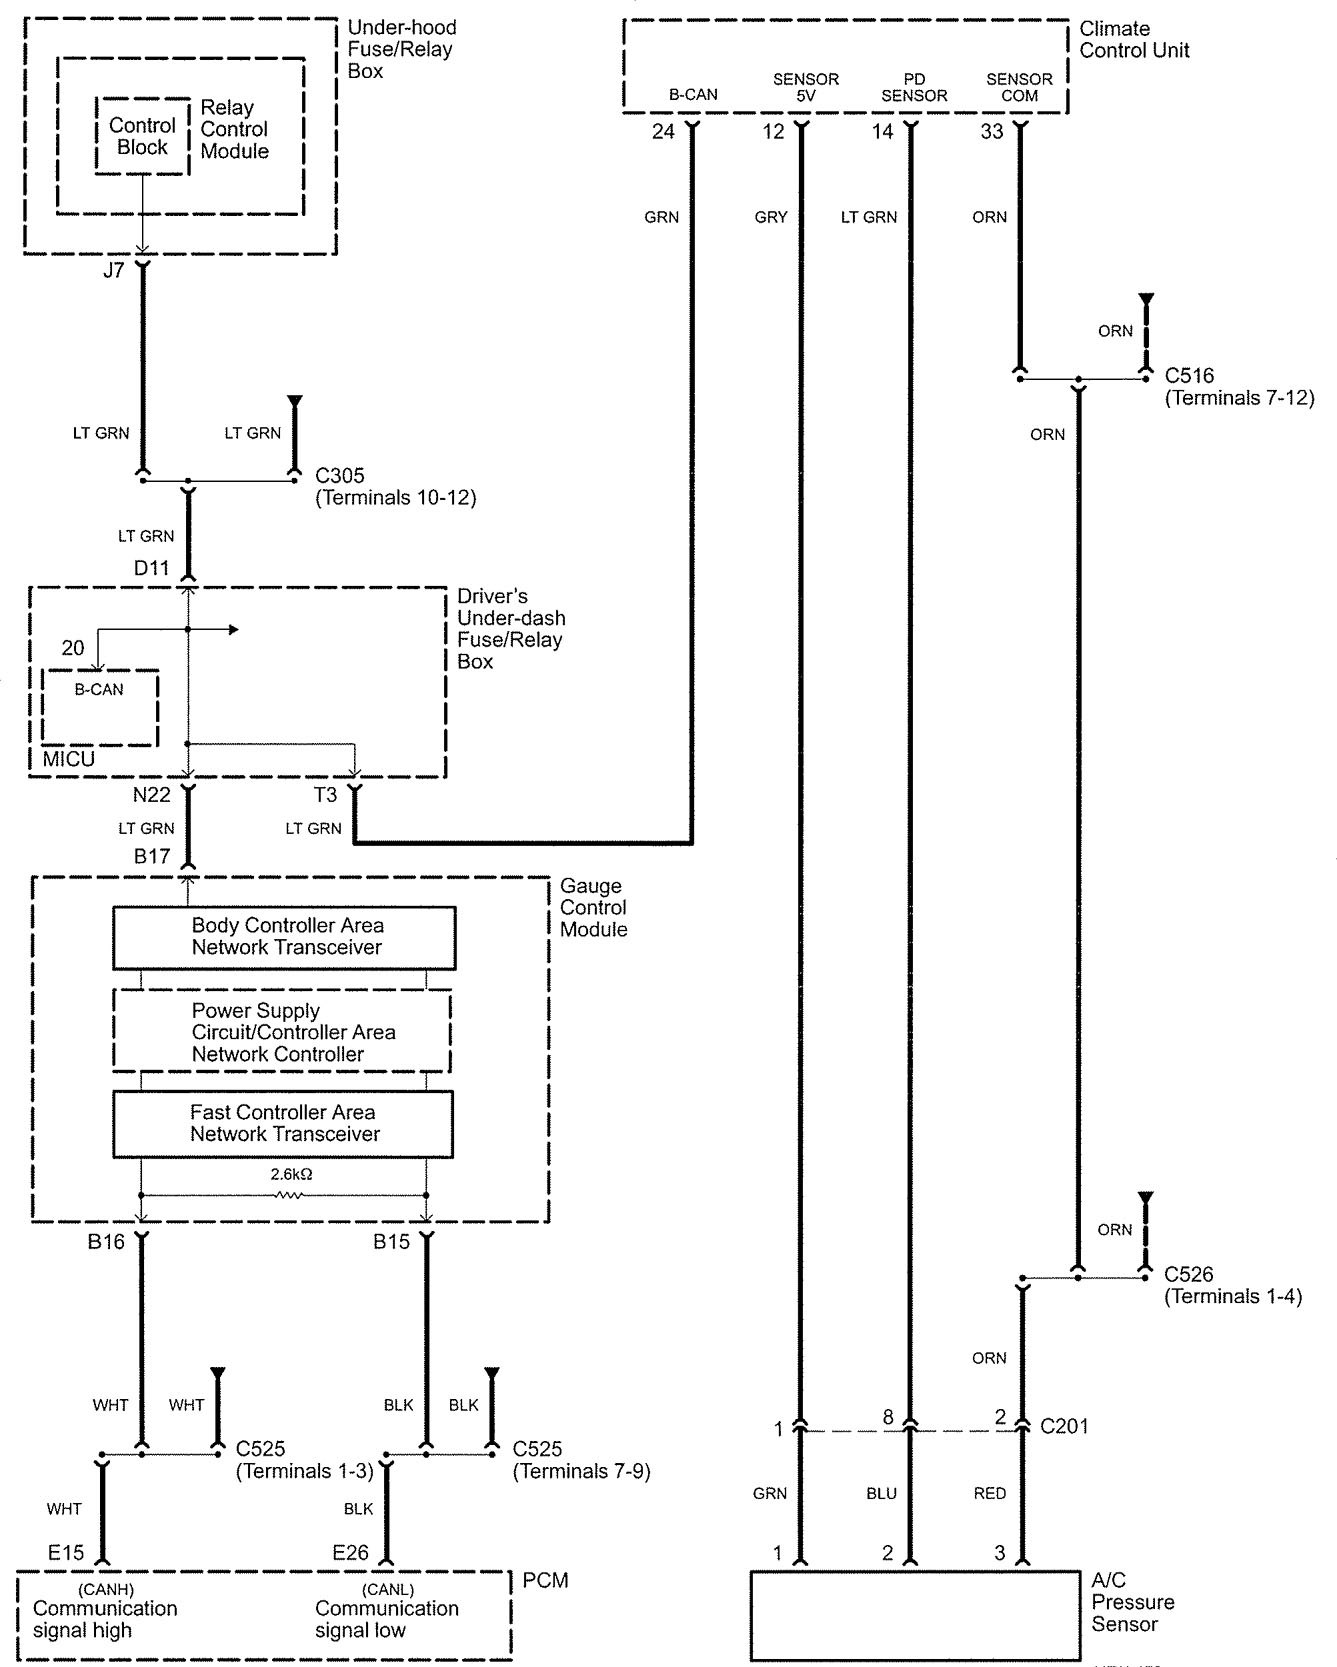 DIAGRAM] 1998 Acura Rl Radio Wiring Diagram FULL Version HD Quality Wiring  Diagram - MEP_SCHEMATIC421.CONTRABBASSIVERDIANI.ITContrabbassi di Simone e Damiano Verdiani